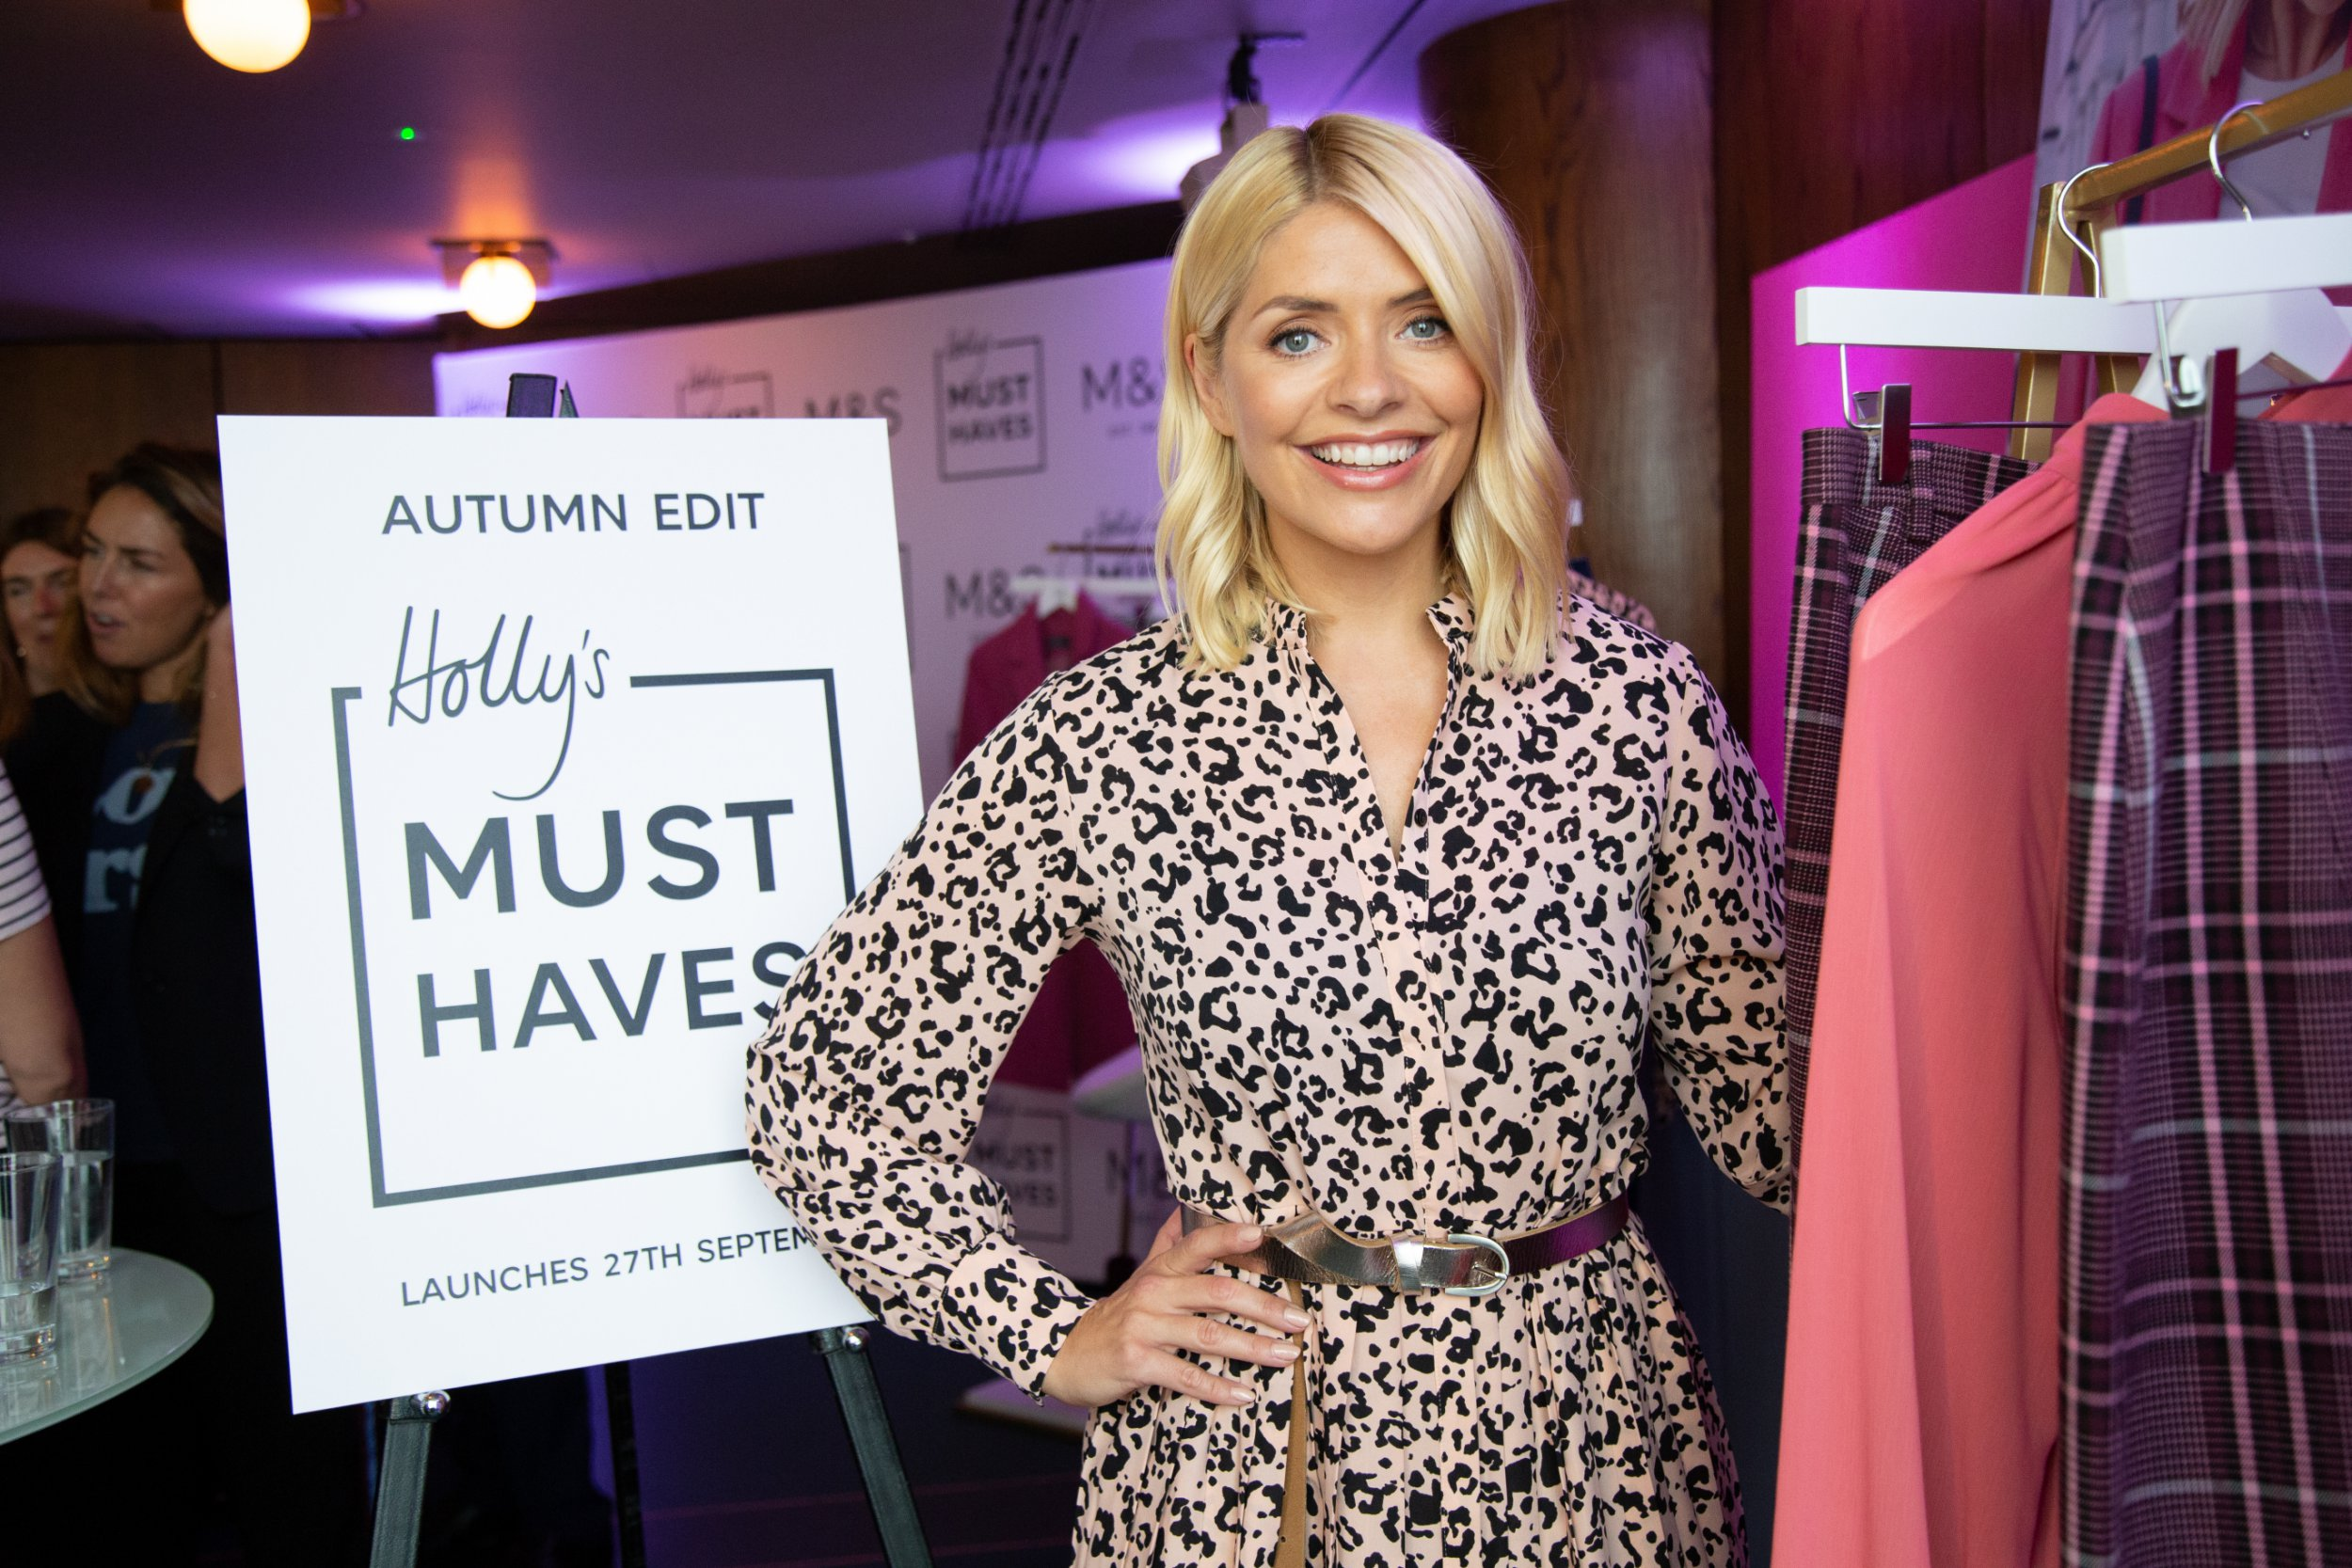 Marks & Spencer is Delighted to Introduce Holly Willoughby as Brand Ambassador and Holly???s Must Haves for Autumn Holly will join Marks & Spencer as a Brand Ambassador, showcasing her Must-Have pieces from the Autumn collections, launching on the 27th September 2018. Holly???s edit will celebrate both her love of style and Marks & Spencer design, as she curates her Must-Haves for the coming season. Holly???s pieces are an exciting addition to the overall Autumn Must-Have campaign that launched at the beginning of September; celebrating the stylish essentials every woman needs in her Autumn wardrobe.